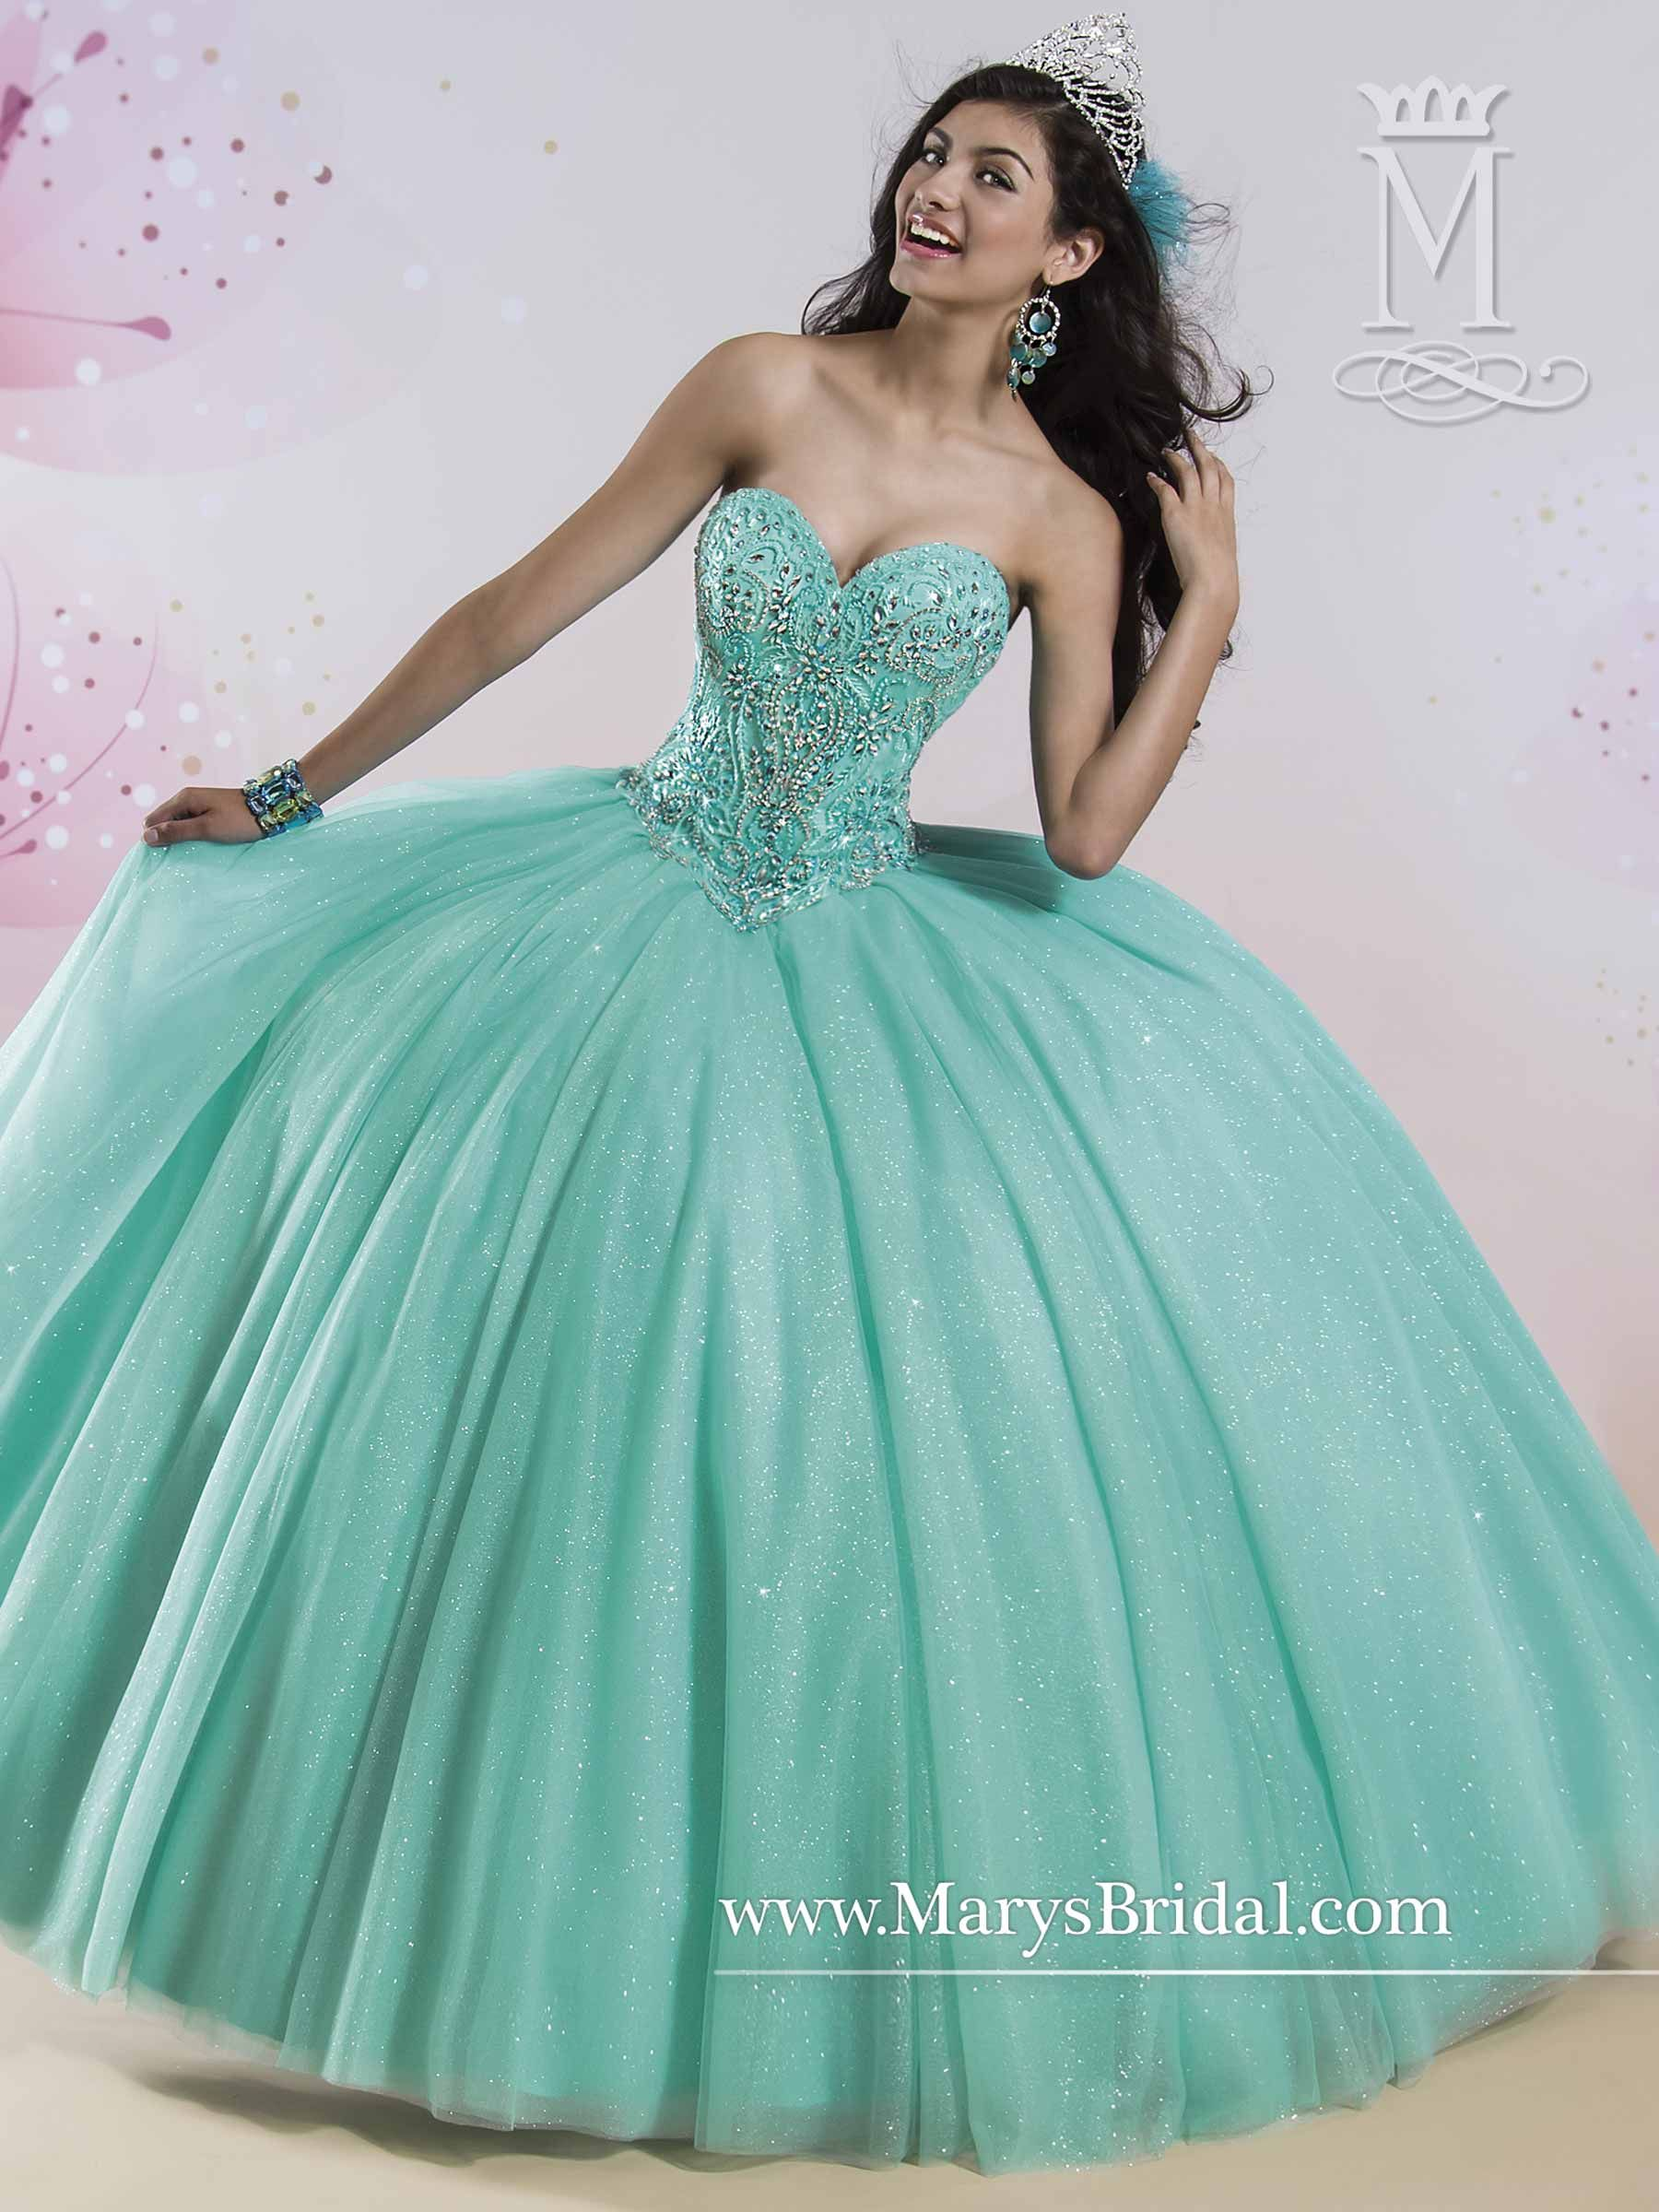 Don't worry, it comes in white. ;)  Quinceanera - Princess - Style: 4Q407 by Mary's Bridal Gowns